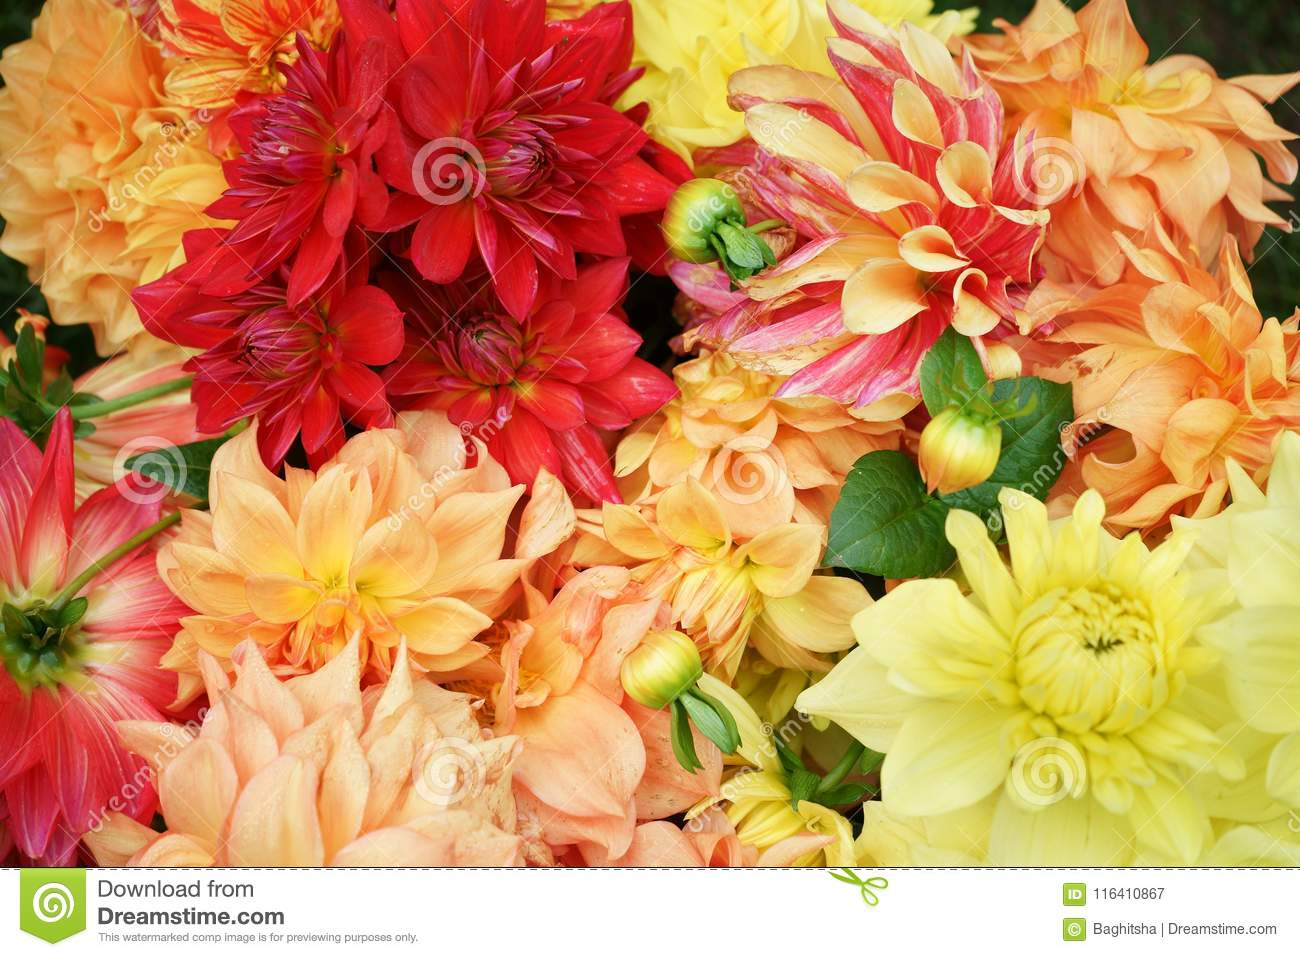 Dahlia Corollas Mixed Varieties And Colors Asteraceae Stock Image